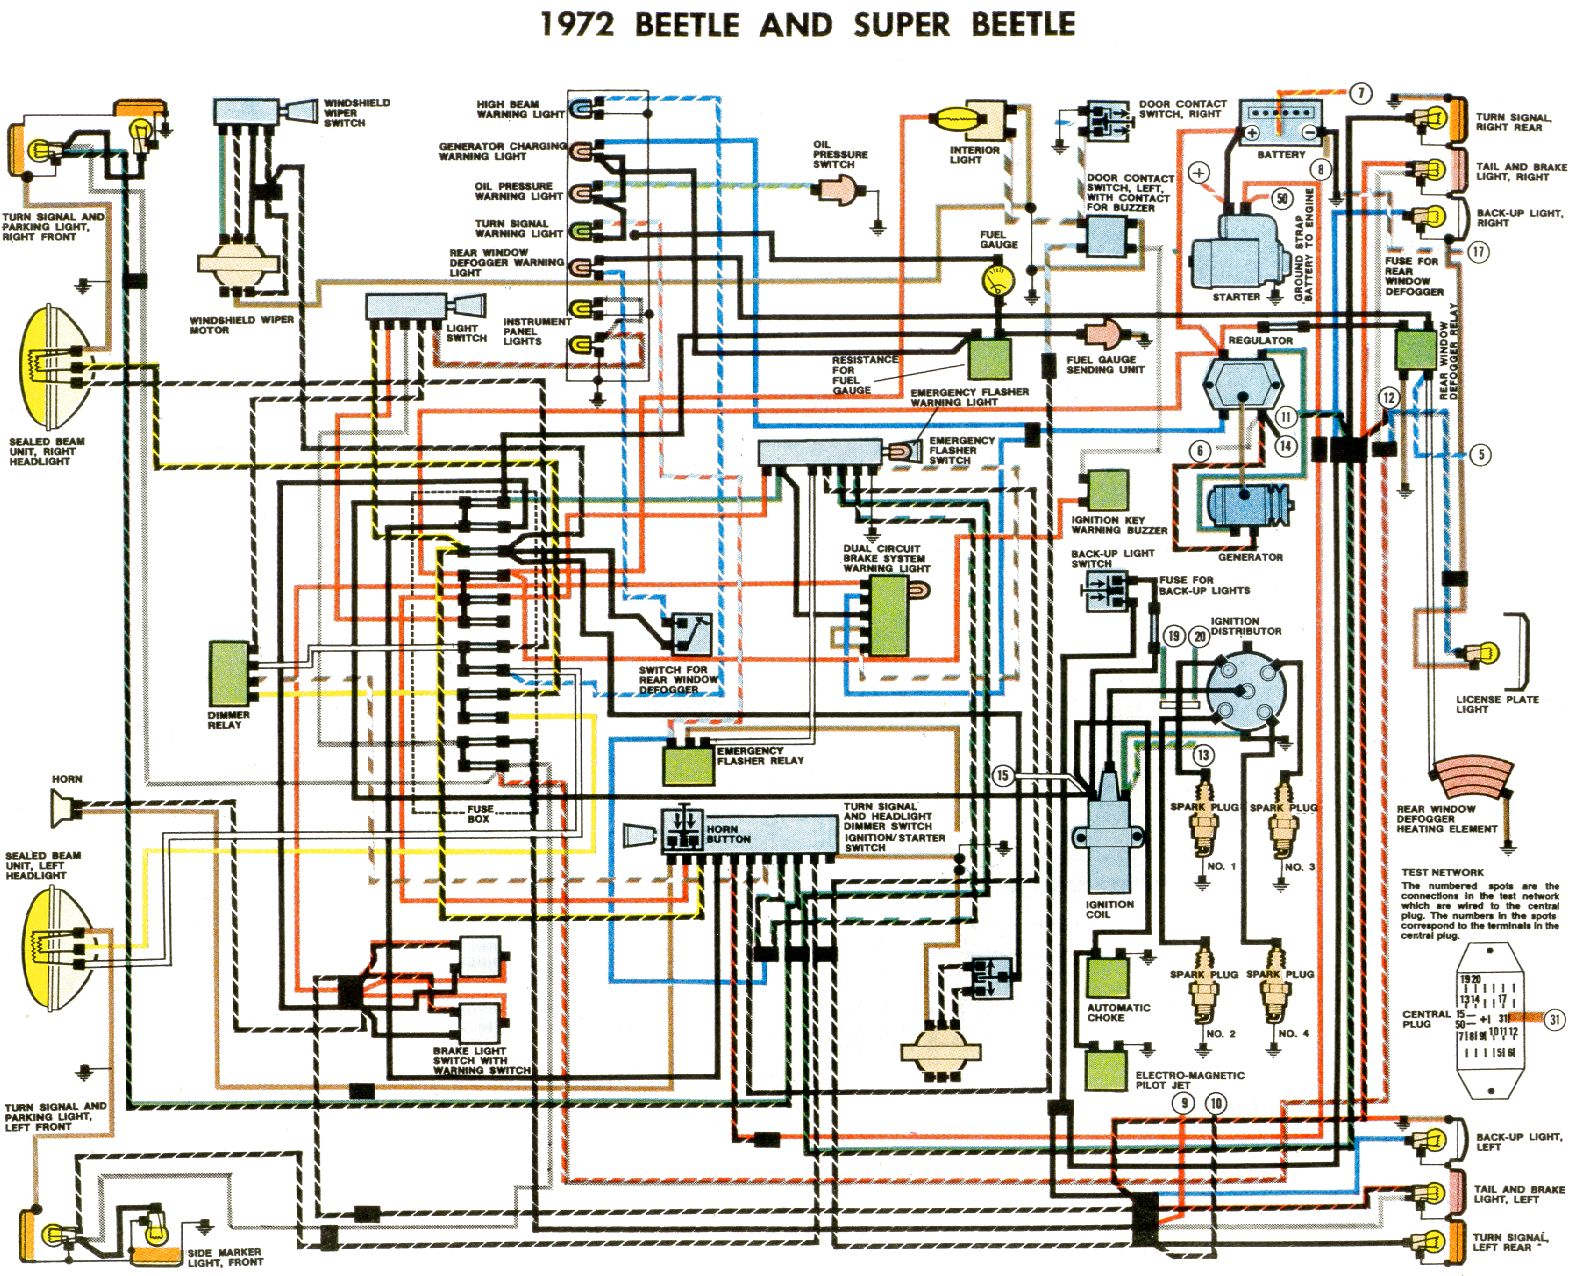 vw beetle wiring diagram 1966 0 10v dimming 72 harness all data hub 1972 bug